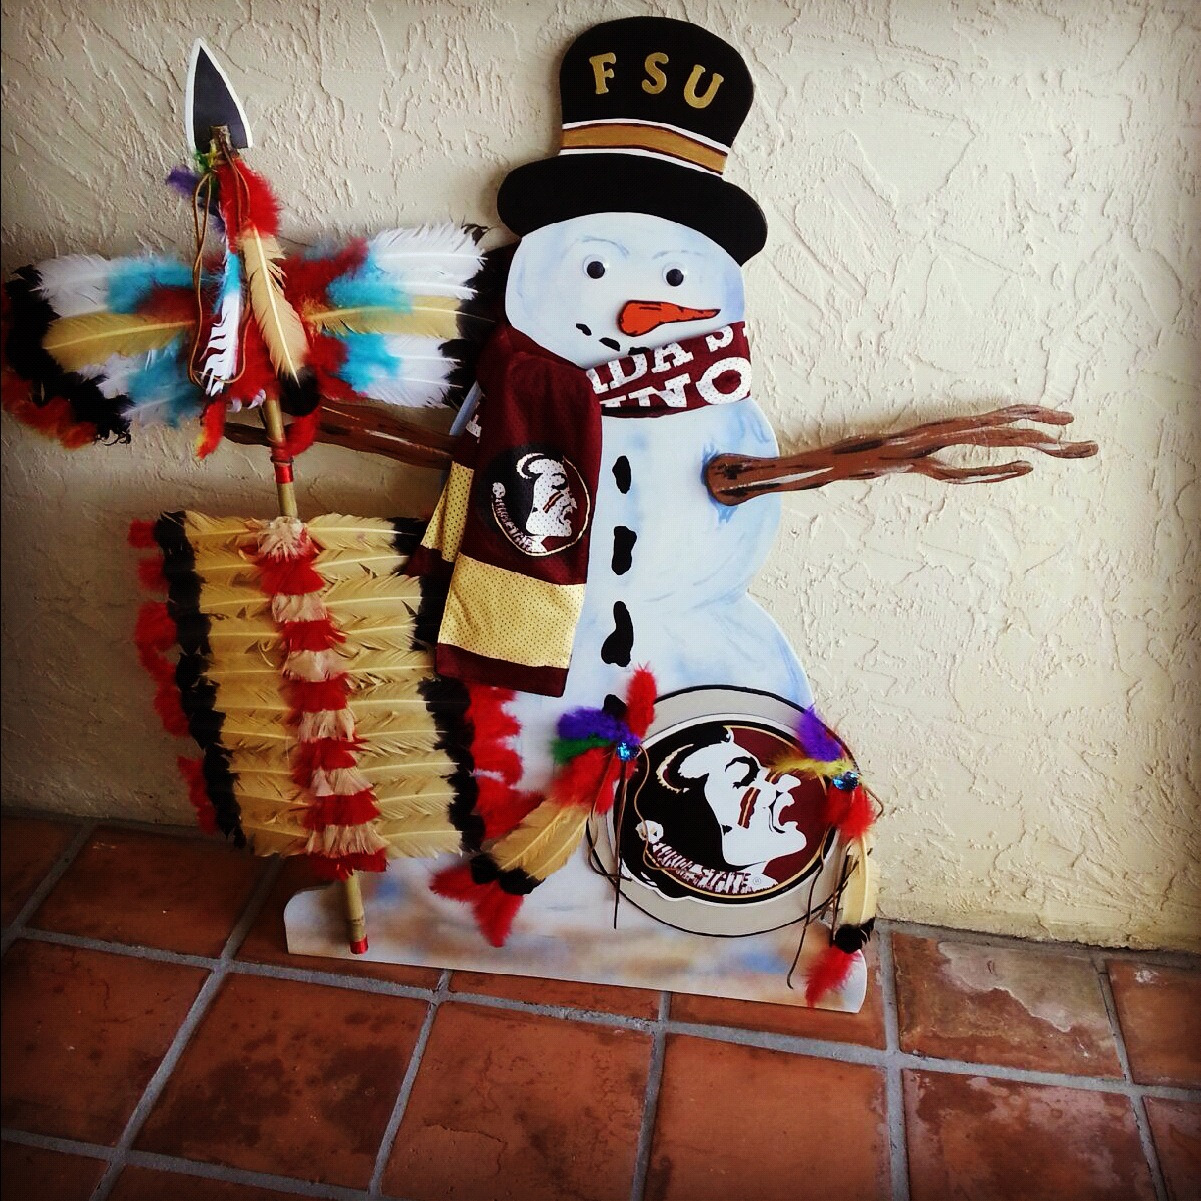 haaaveyoumetlauren:  Our perfect snowman (;